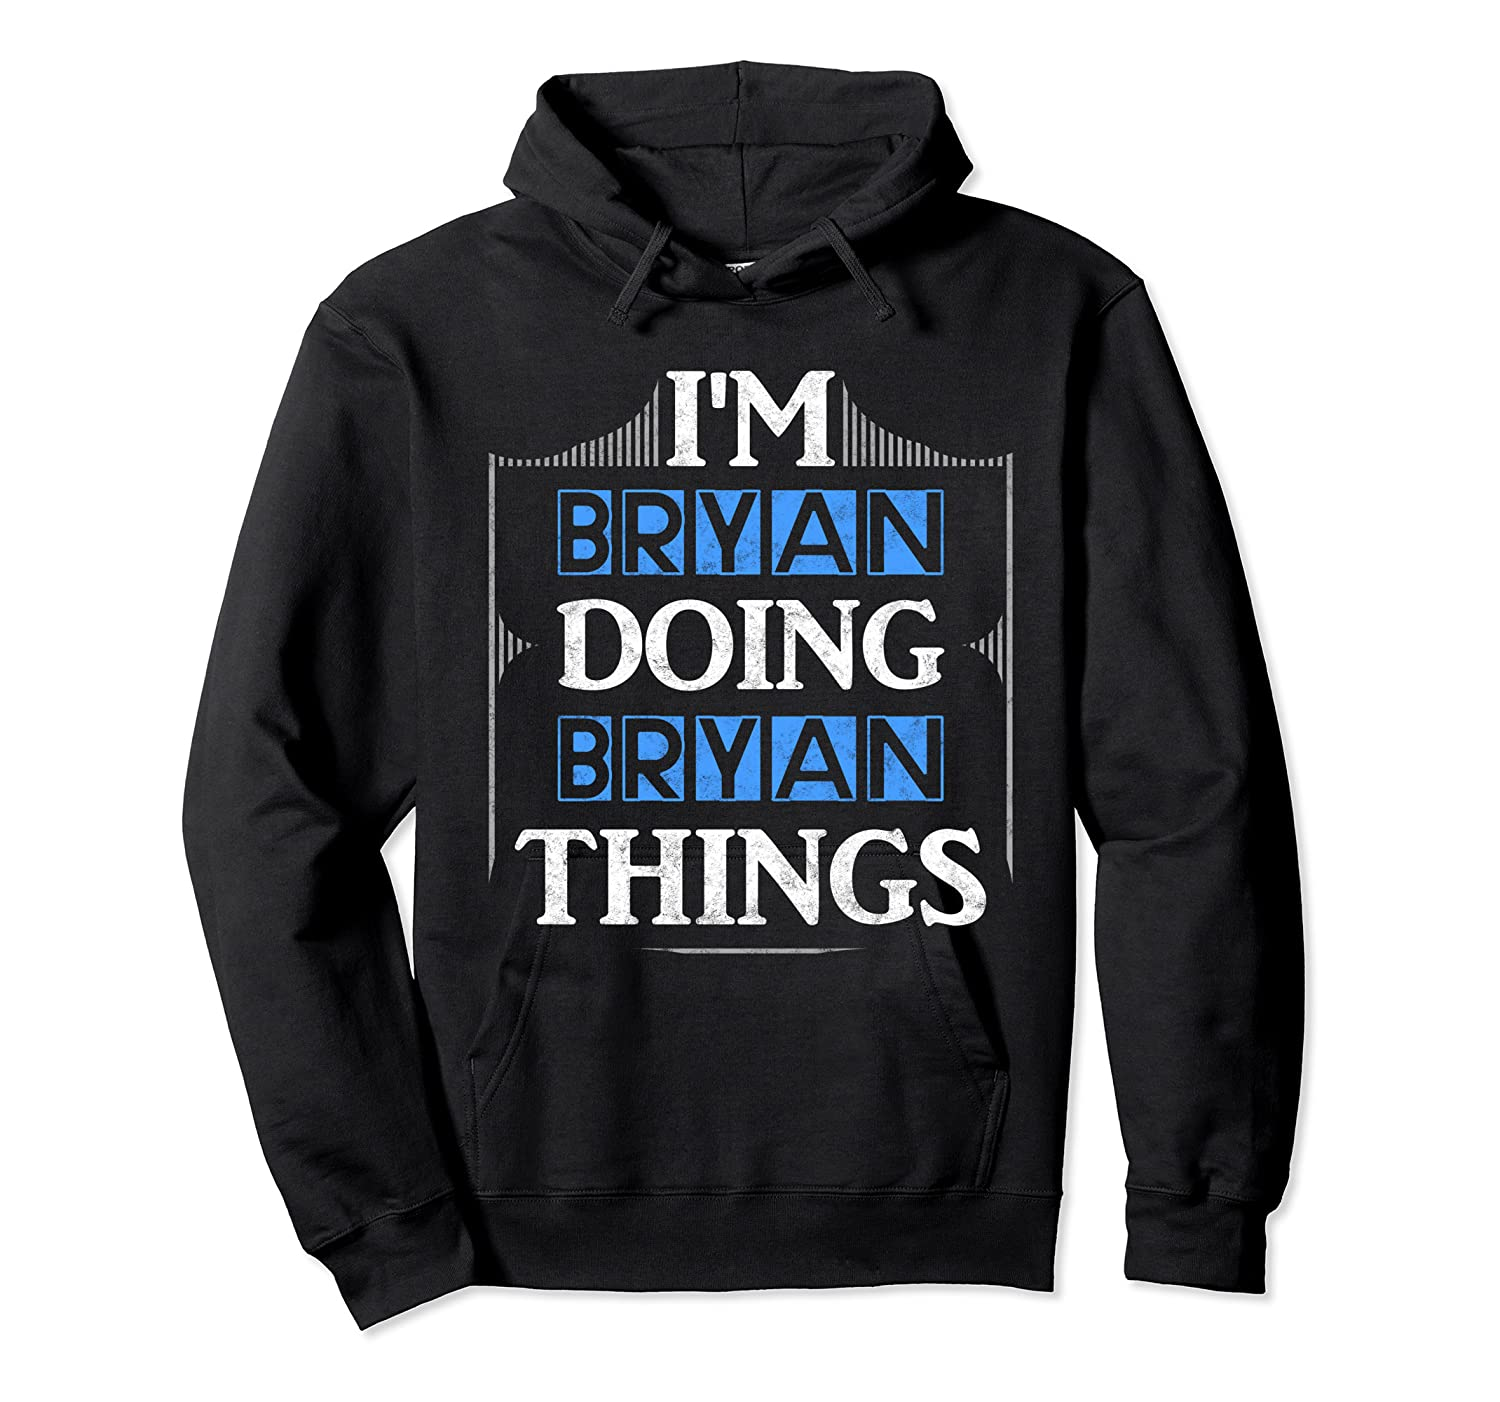 I'm Bryan Doing Bryan Things Funny Forename Gift Shirts Unisex Pullover Hoodie